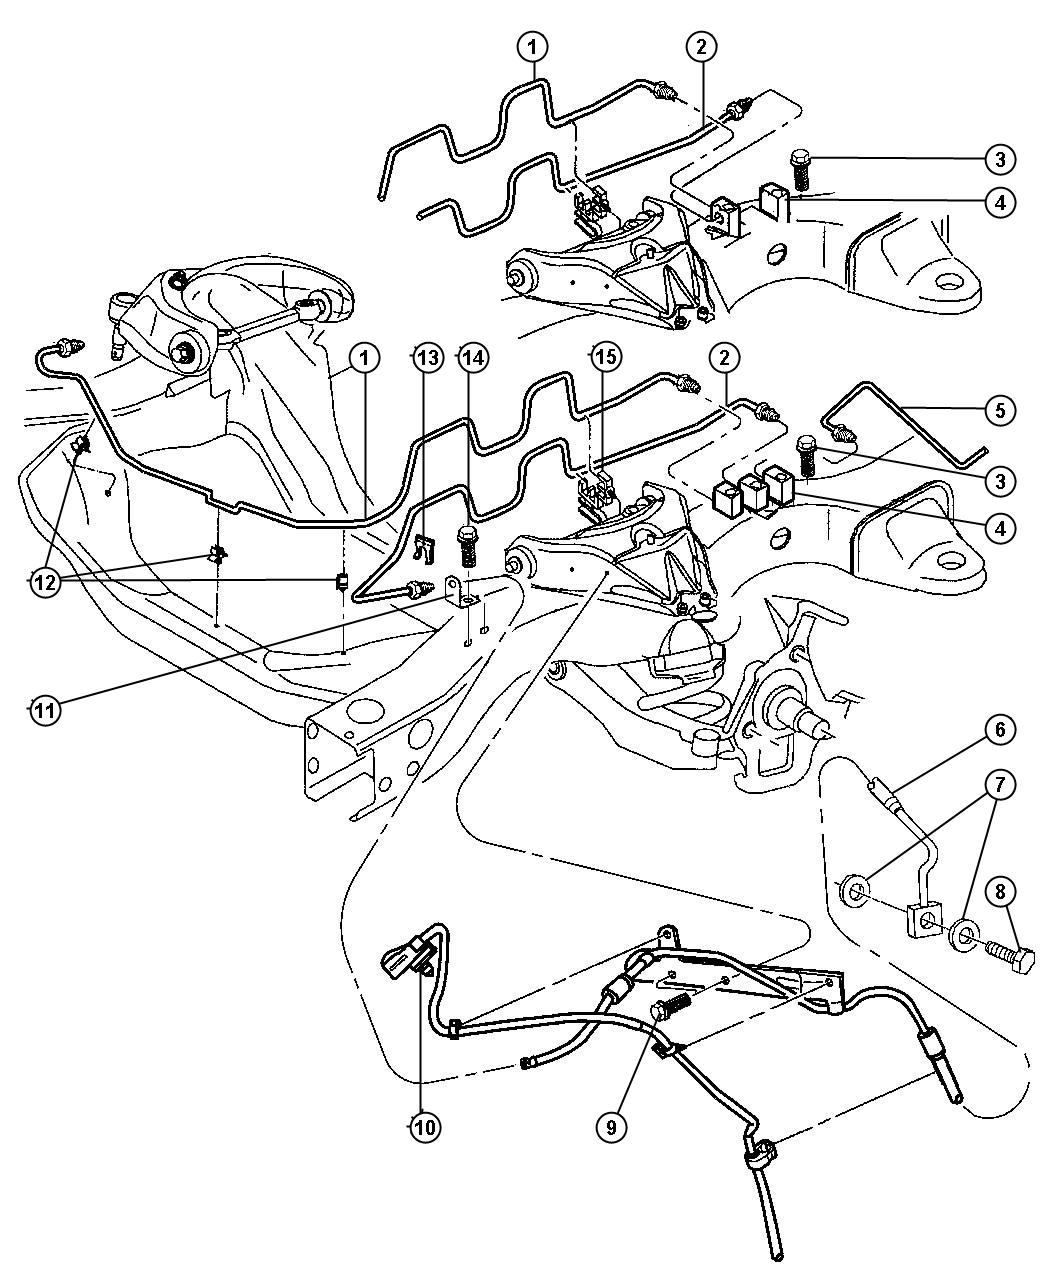 1999 Dodge Dakota Radio Wiring Diagram from factorychryslerparts.com